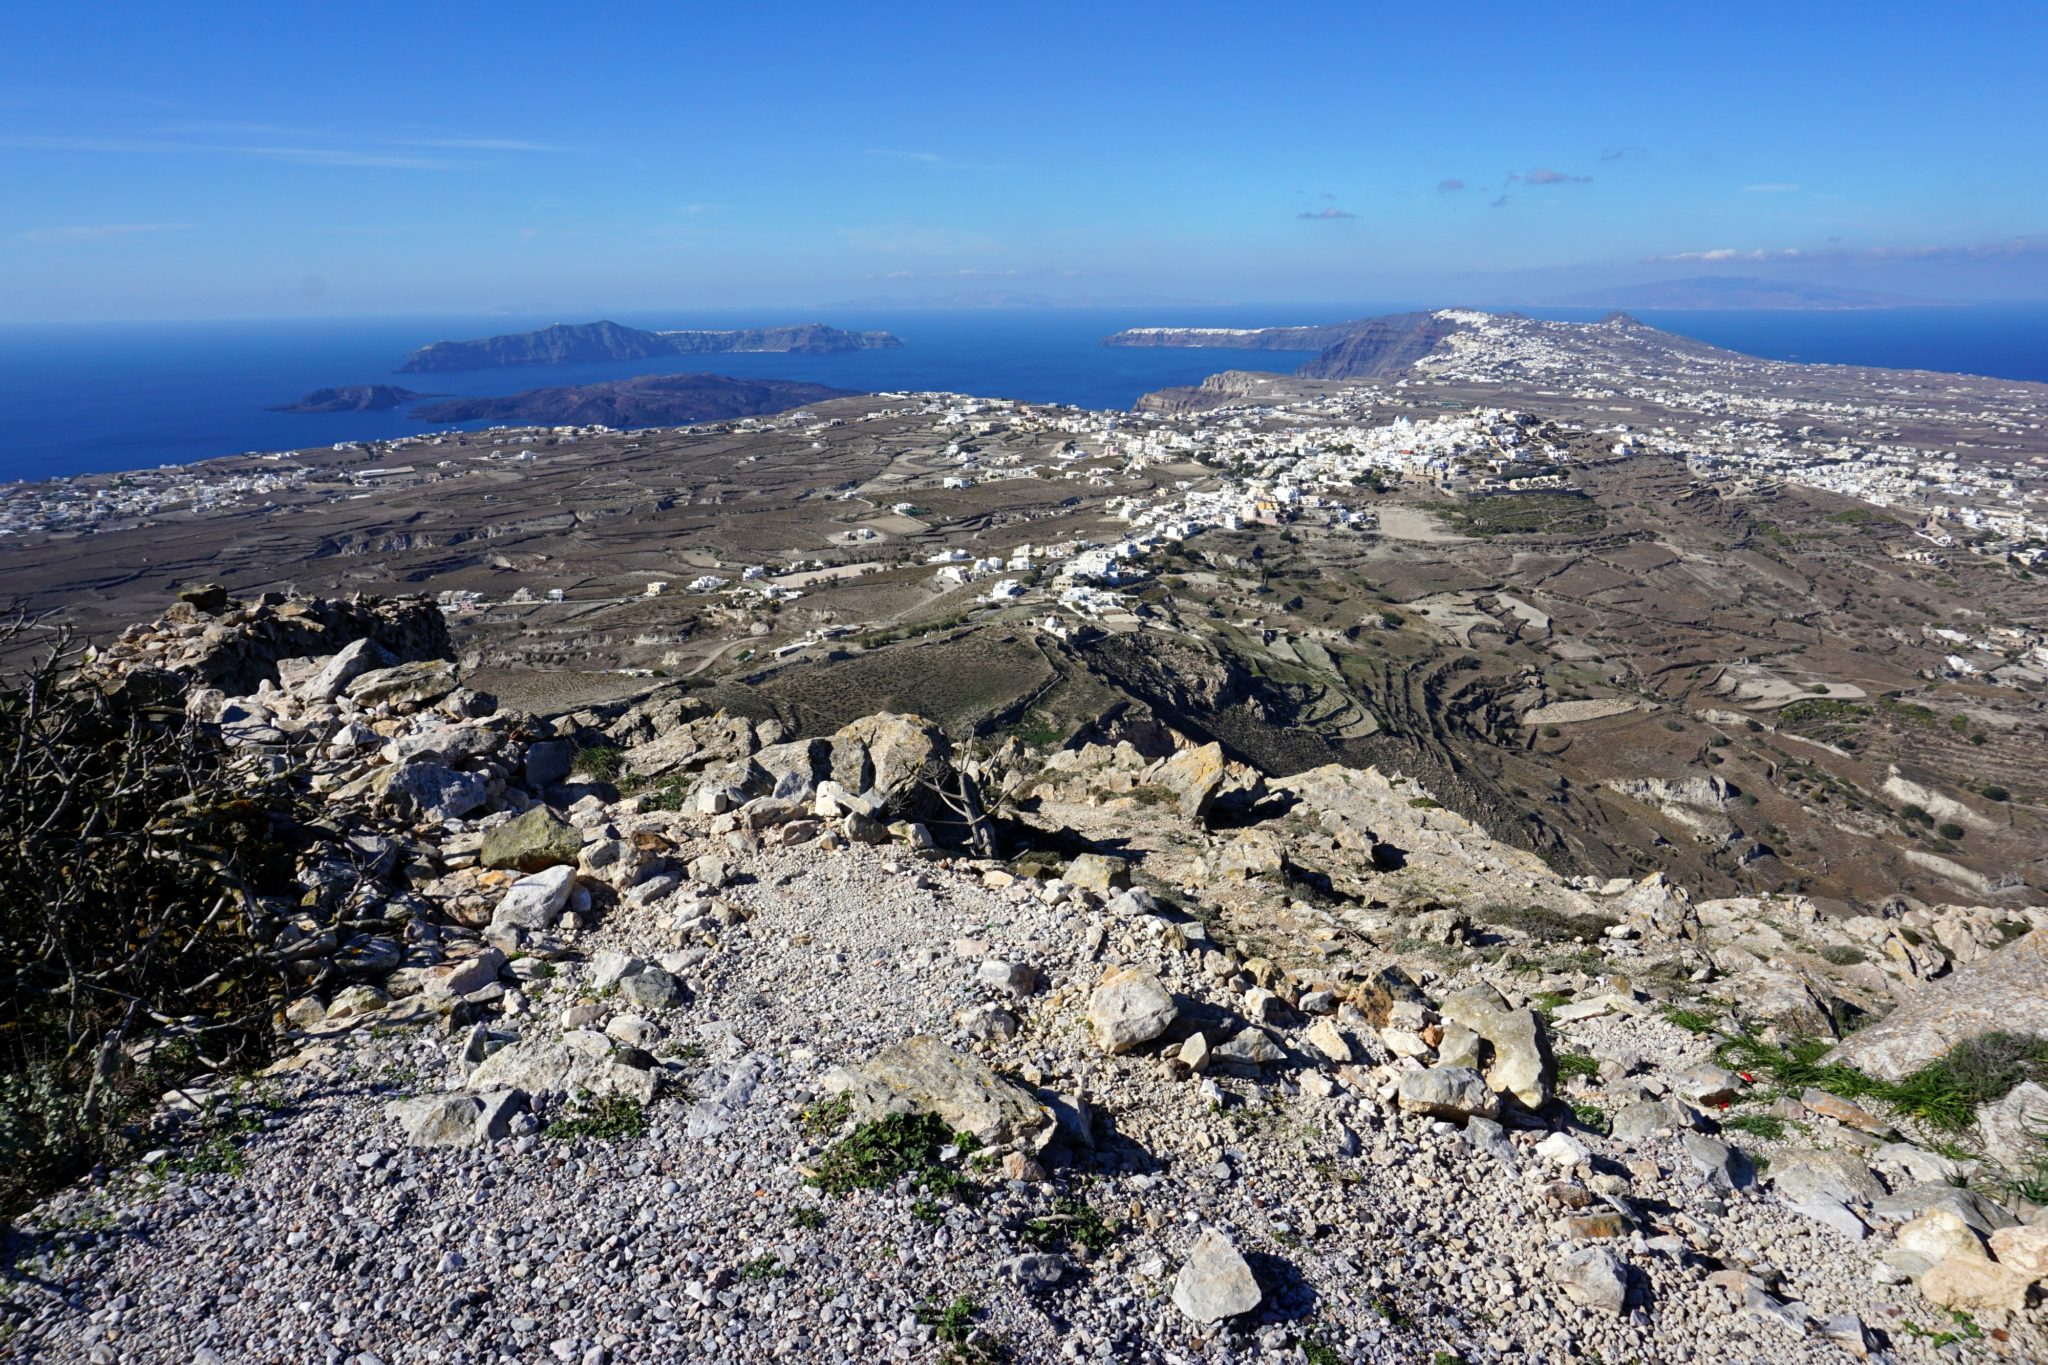 Great view of the island of Santorini from above, the top of Mt. Profitis Ilias.